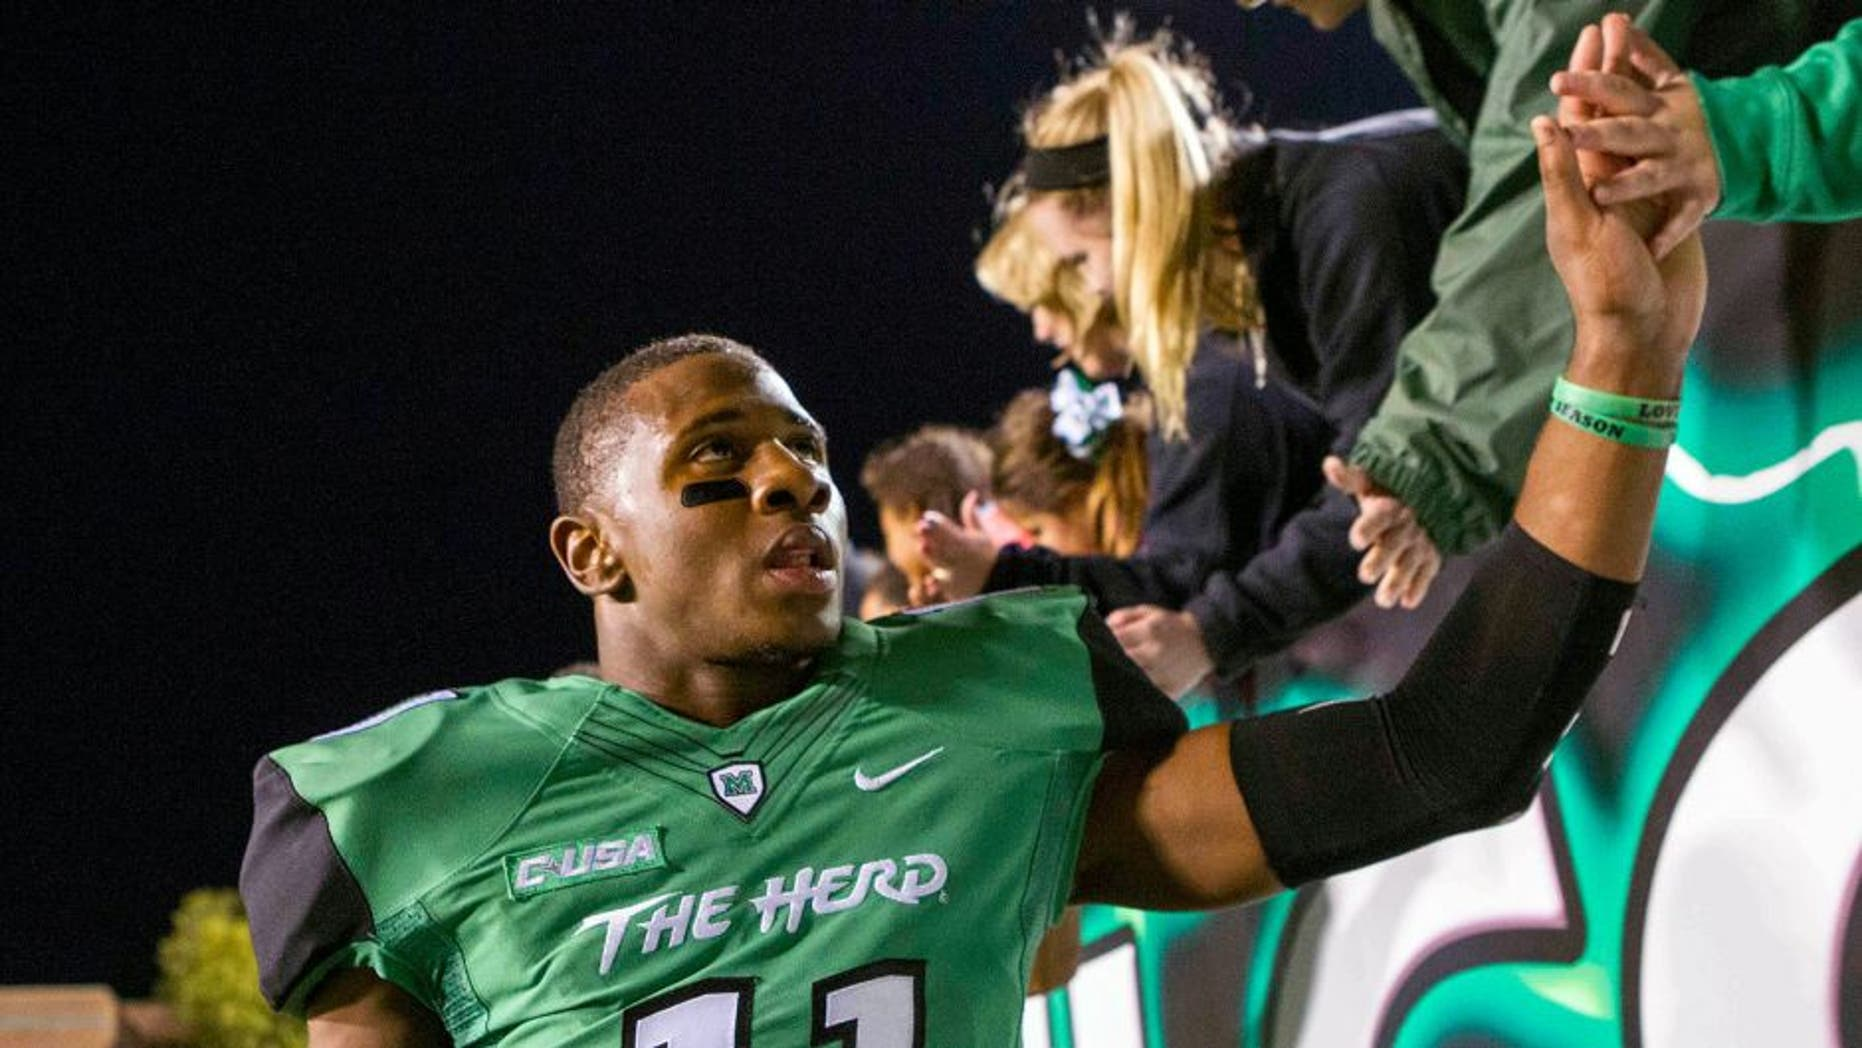 Oct 9, 2015; Huntington, WV, USA; Marshall Thundering Herd defensive back Rodney Allen (11) celebrates beating Southern Miss Golden Eagles at the end of the game at Joan C. Edwards Stadium. Marshall won the game 31-10. Mandatory Credit: Ben Queen-USA TODAY Sports